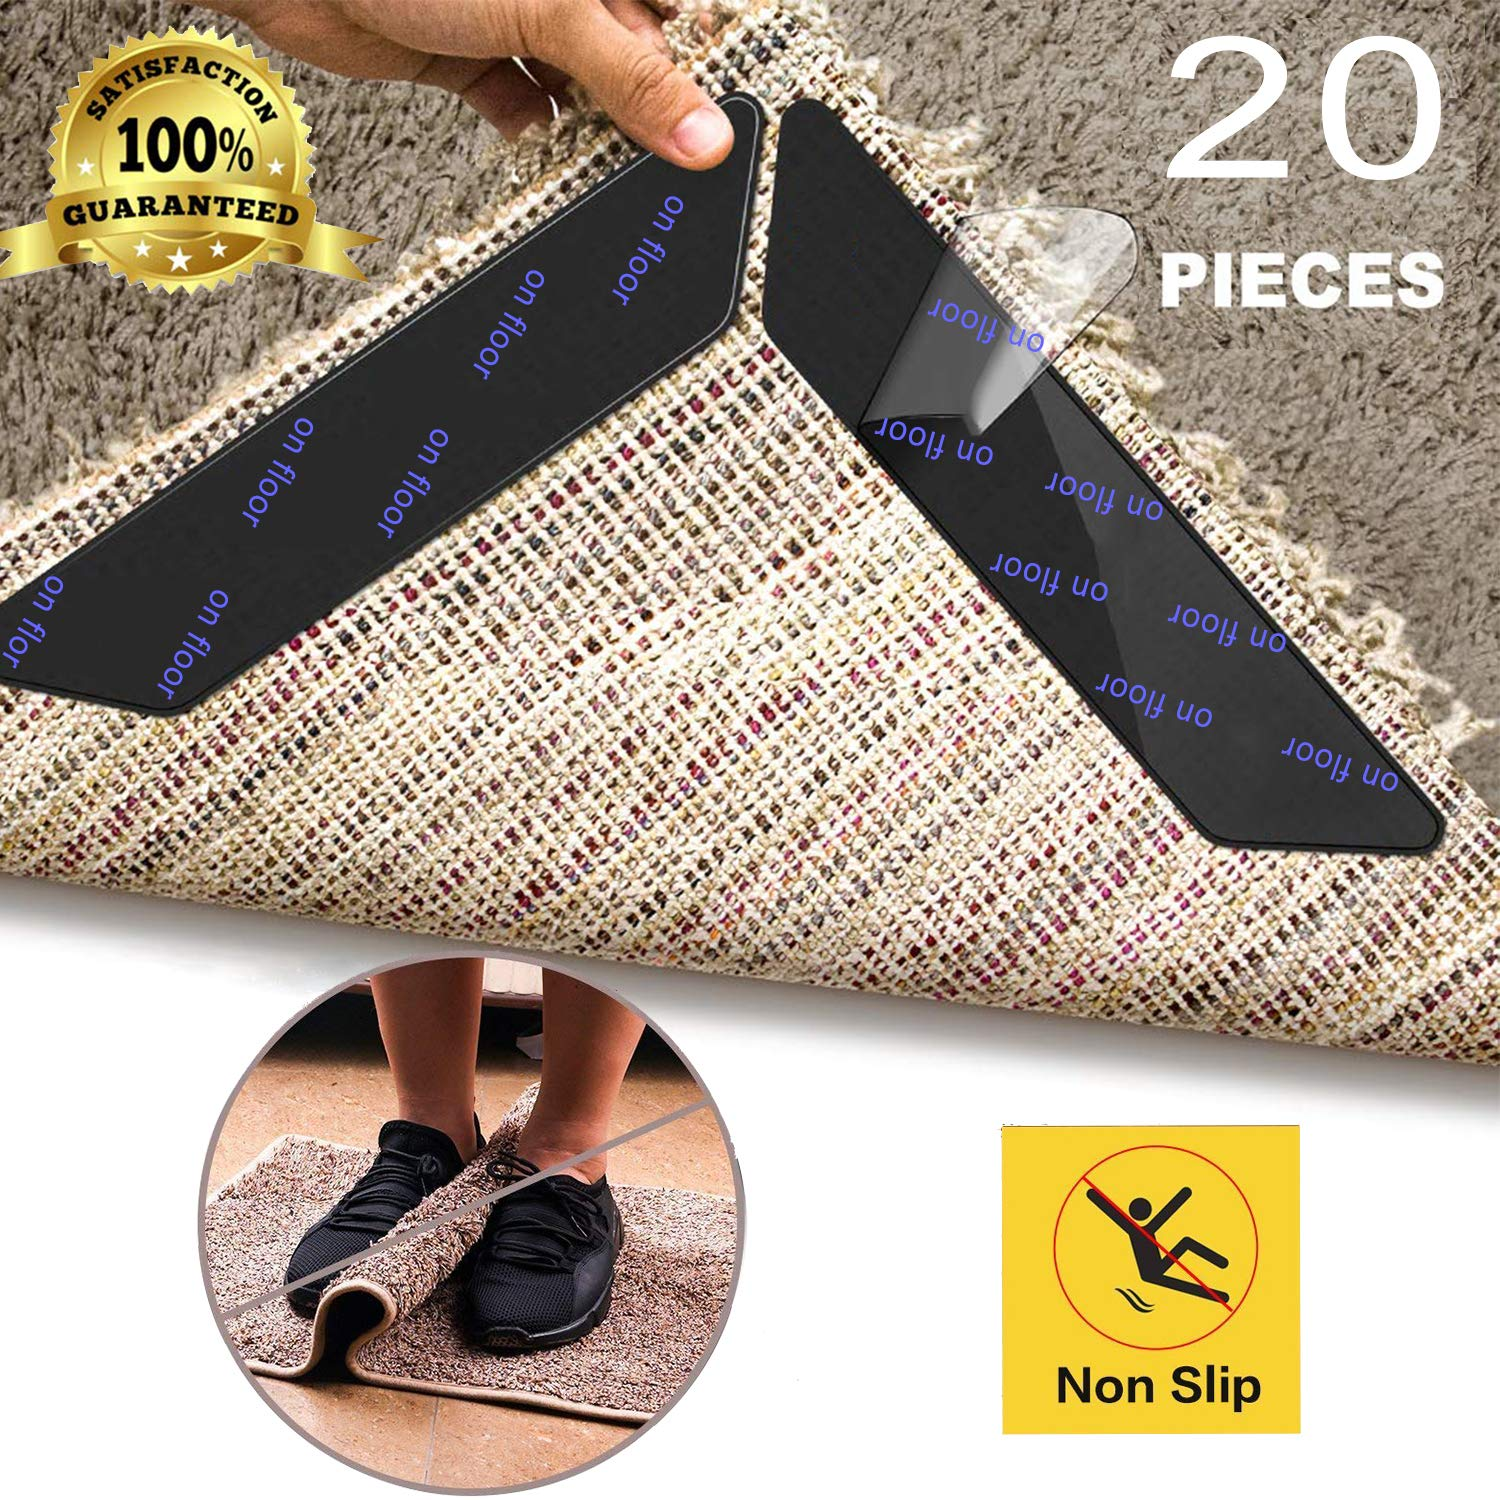 20 Pcs Anti Curling Carpet Tape Rug Grippers Non Slip Rug